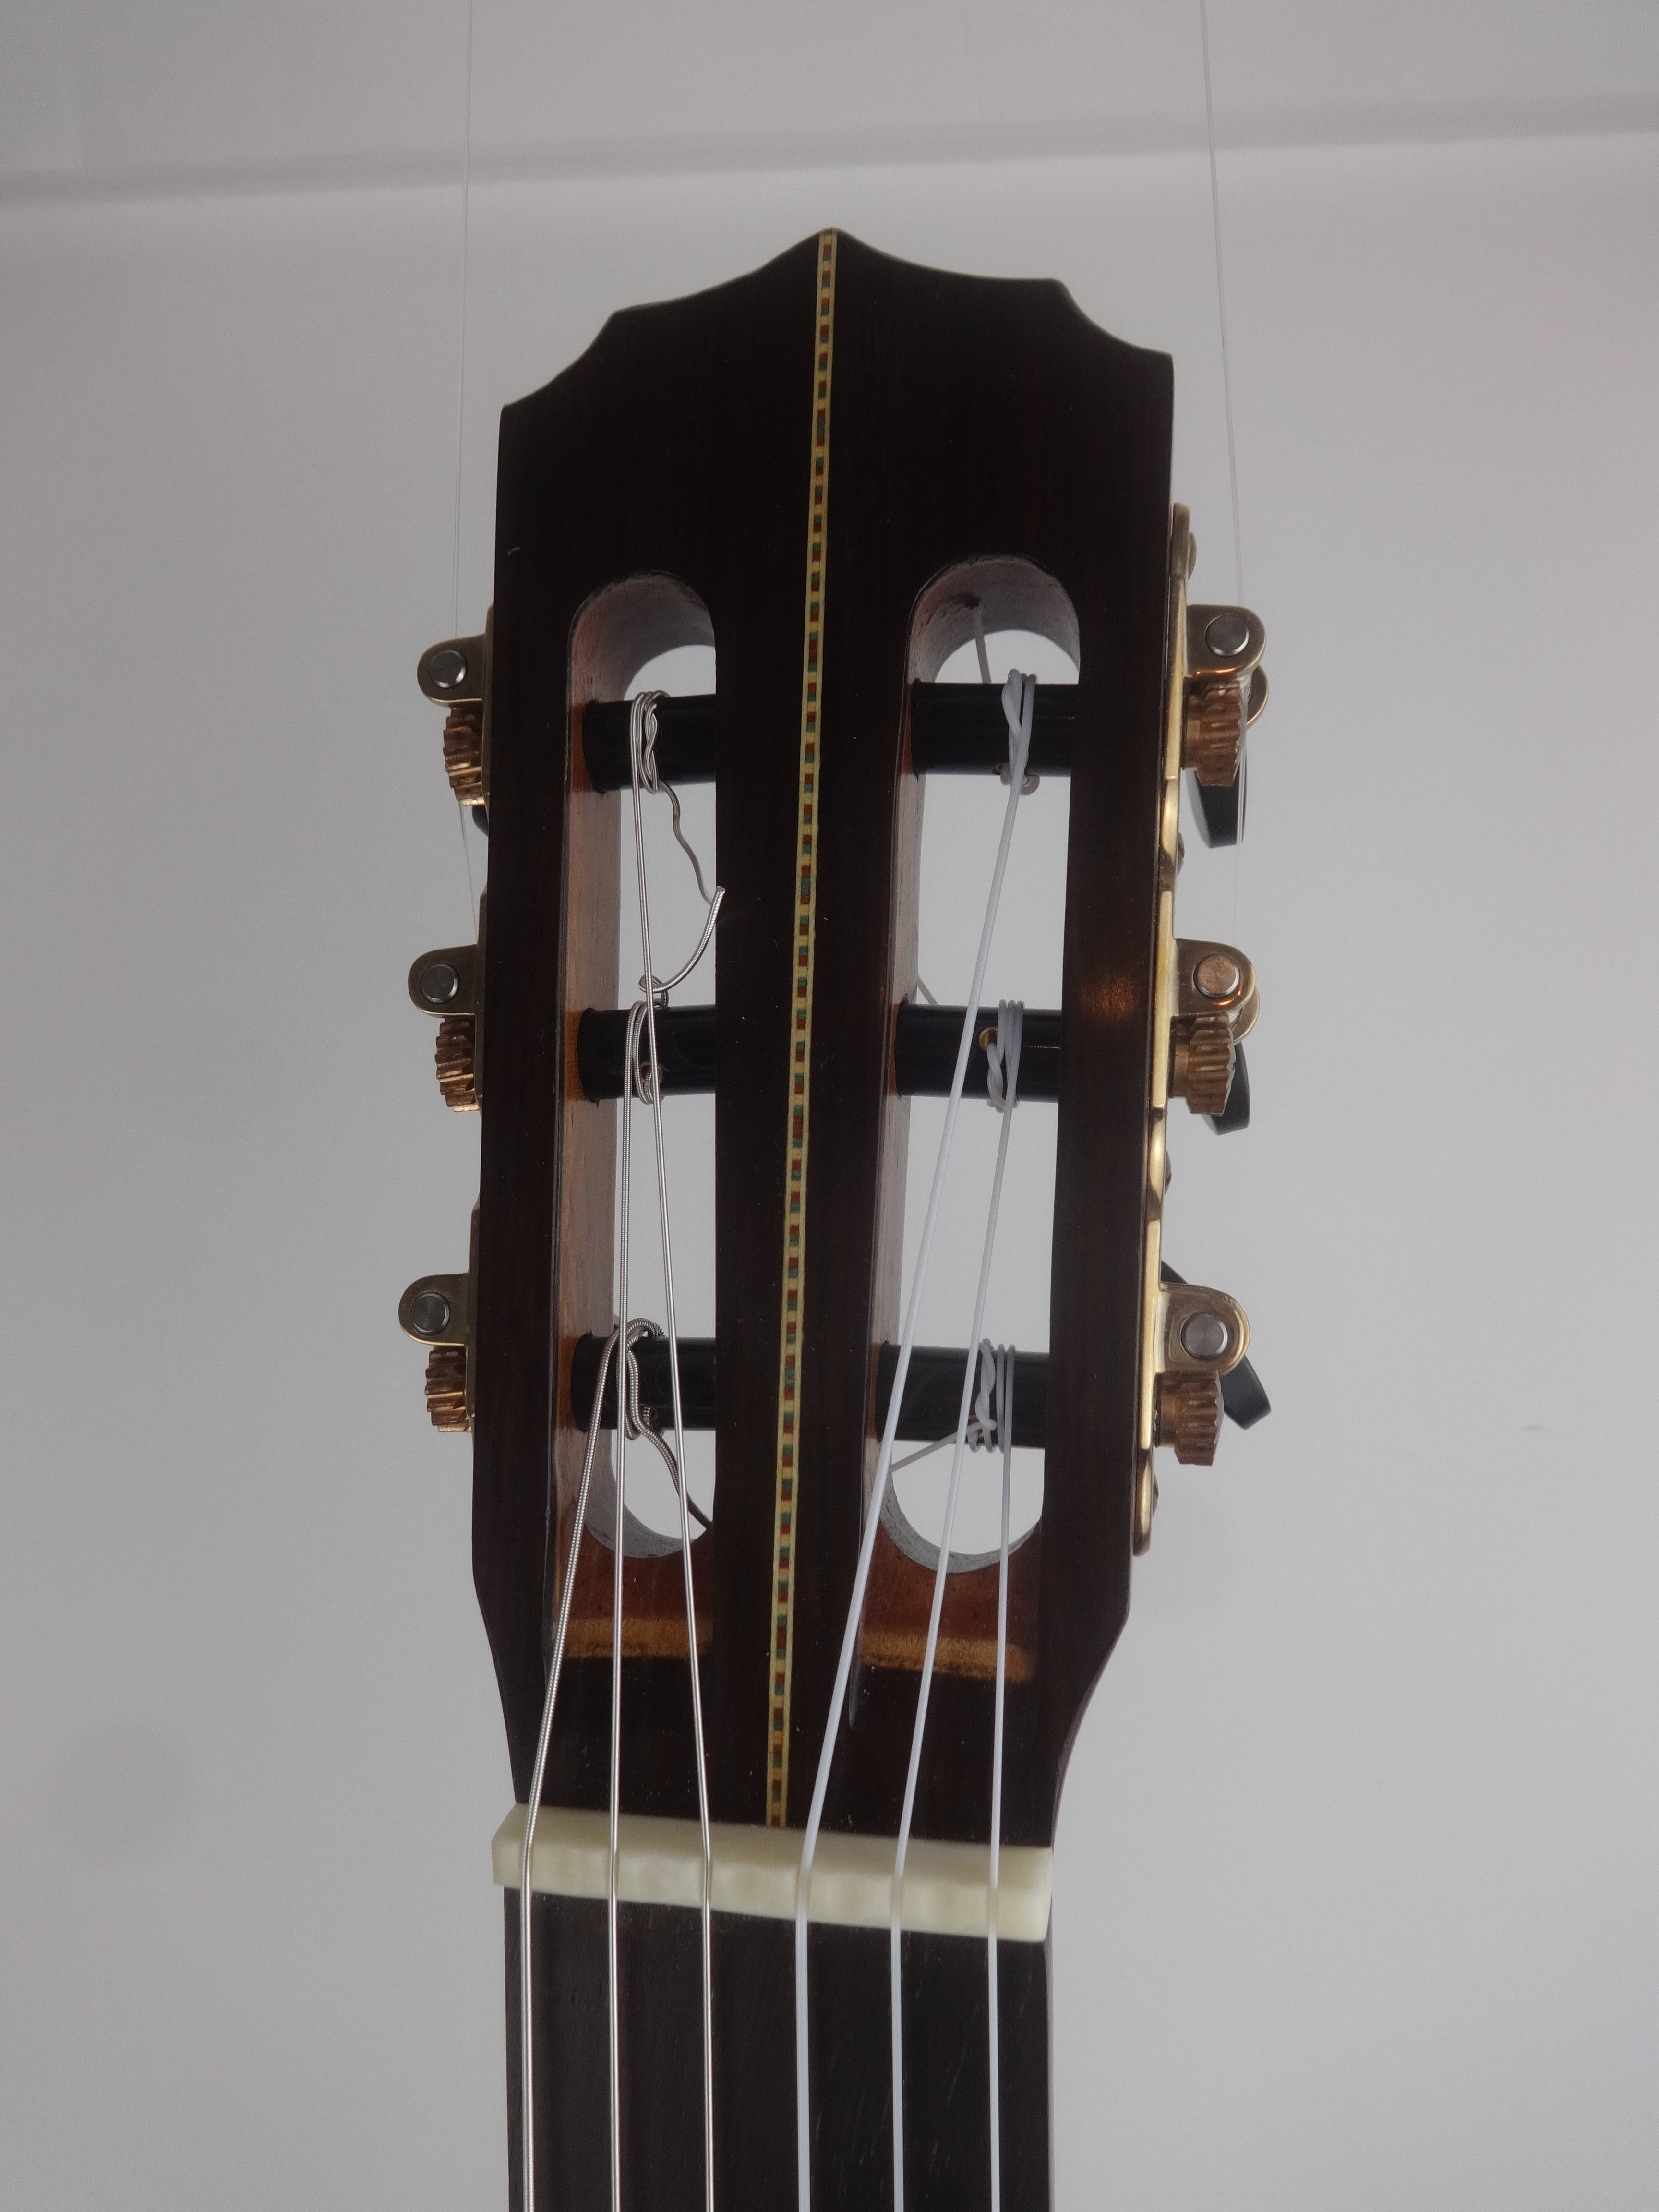 Headstock. Sloane tuning machines with low friction rollers.